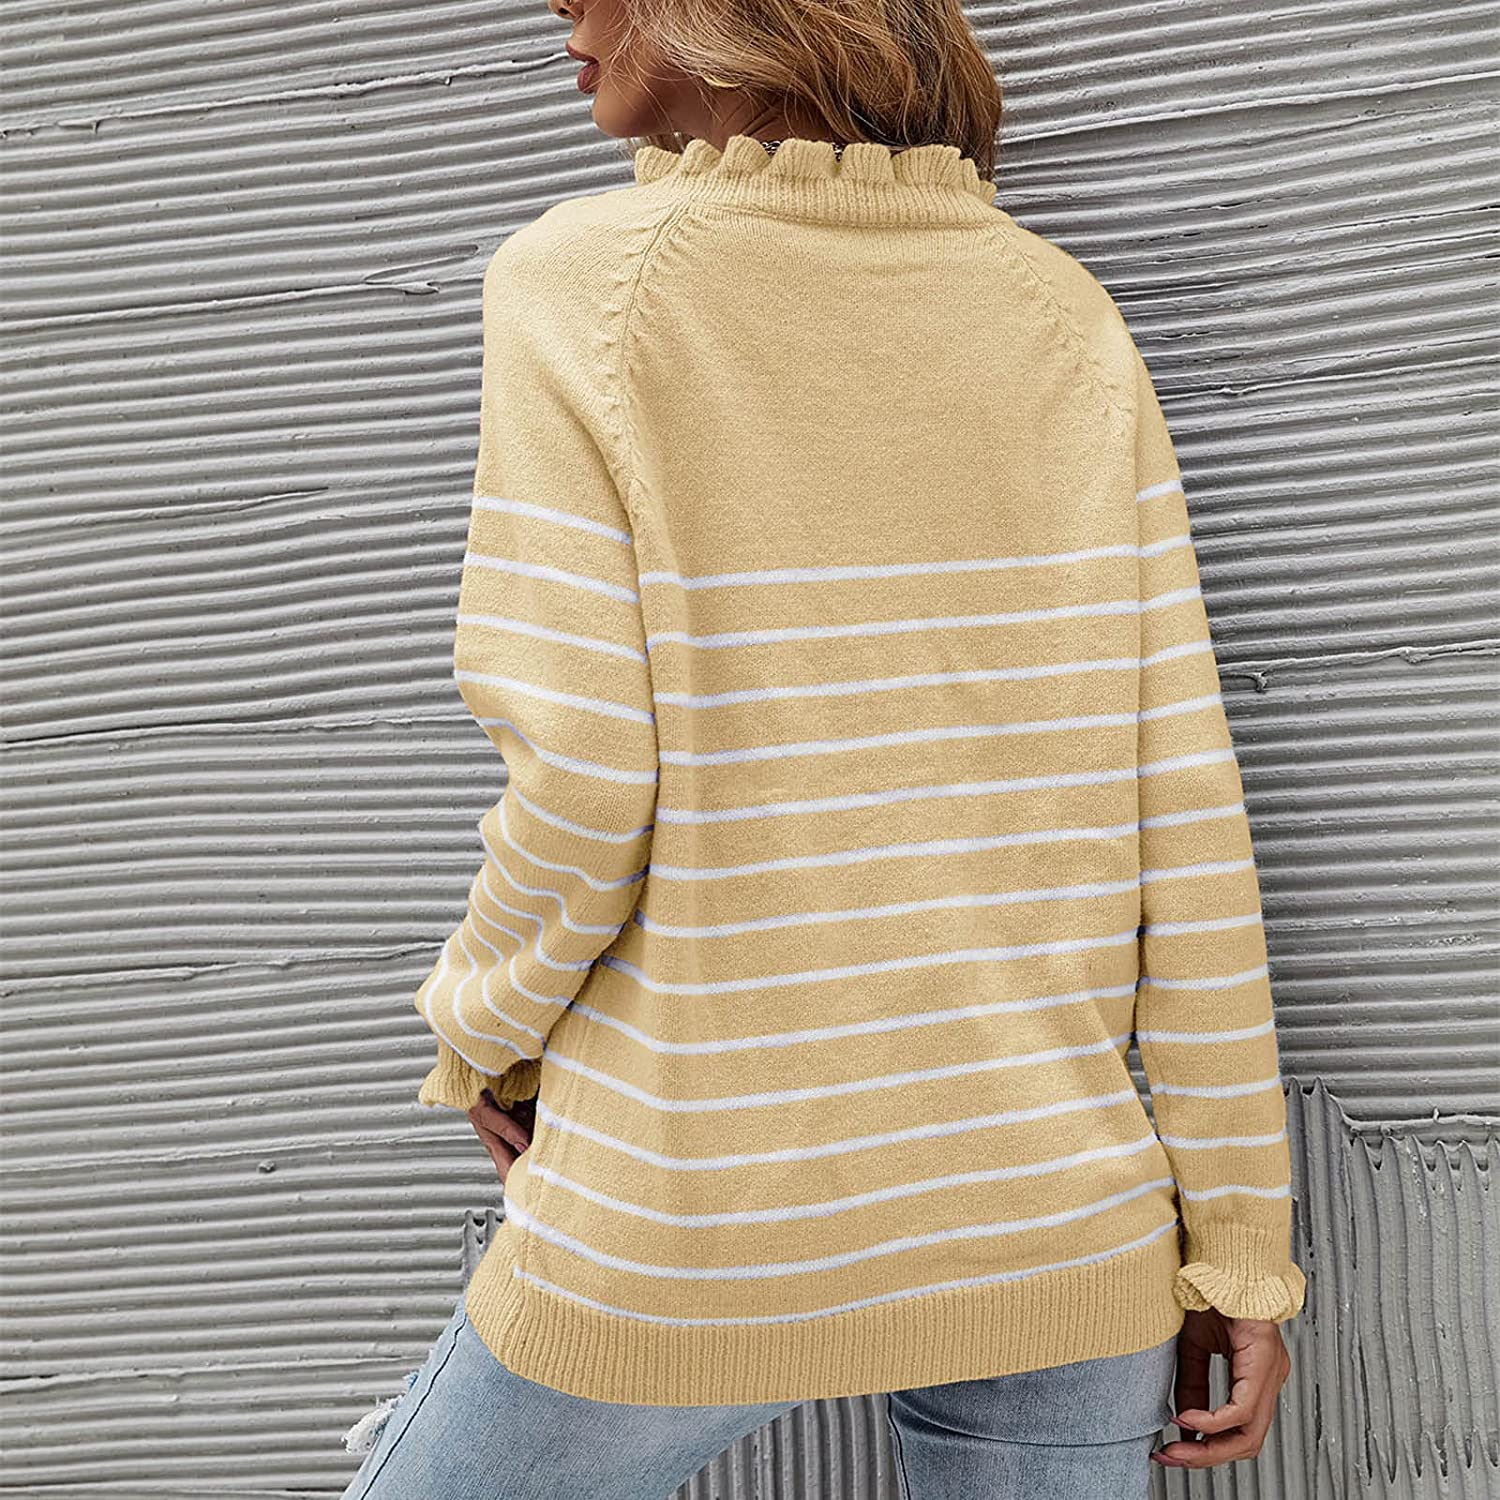 YfiDSJFGJ Oversized Sweaters Womens Long Sleeve Casual Off Shoulder Button Down Sweater,Ruffle Knit Pullover Tops